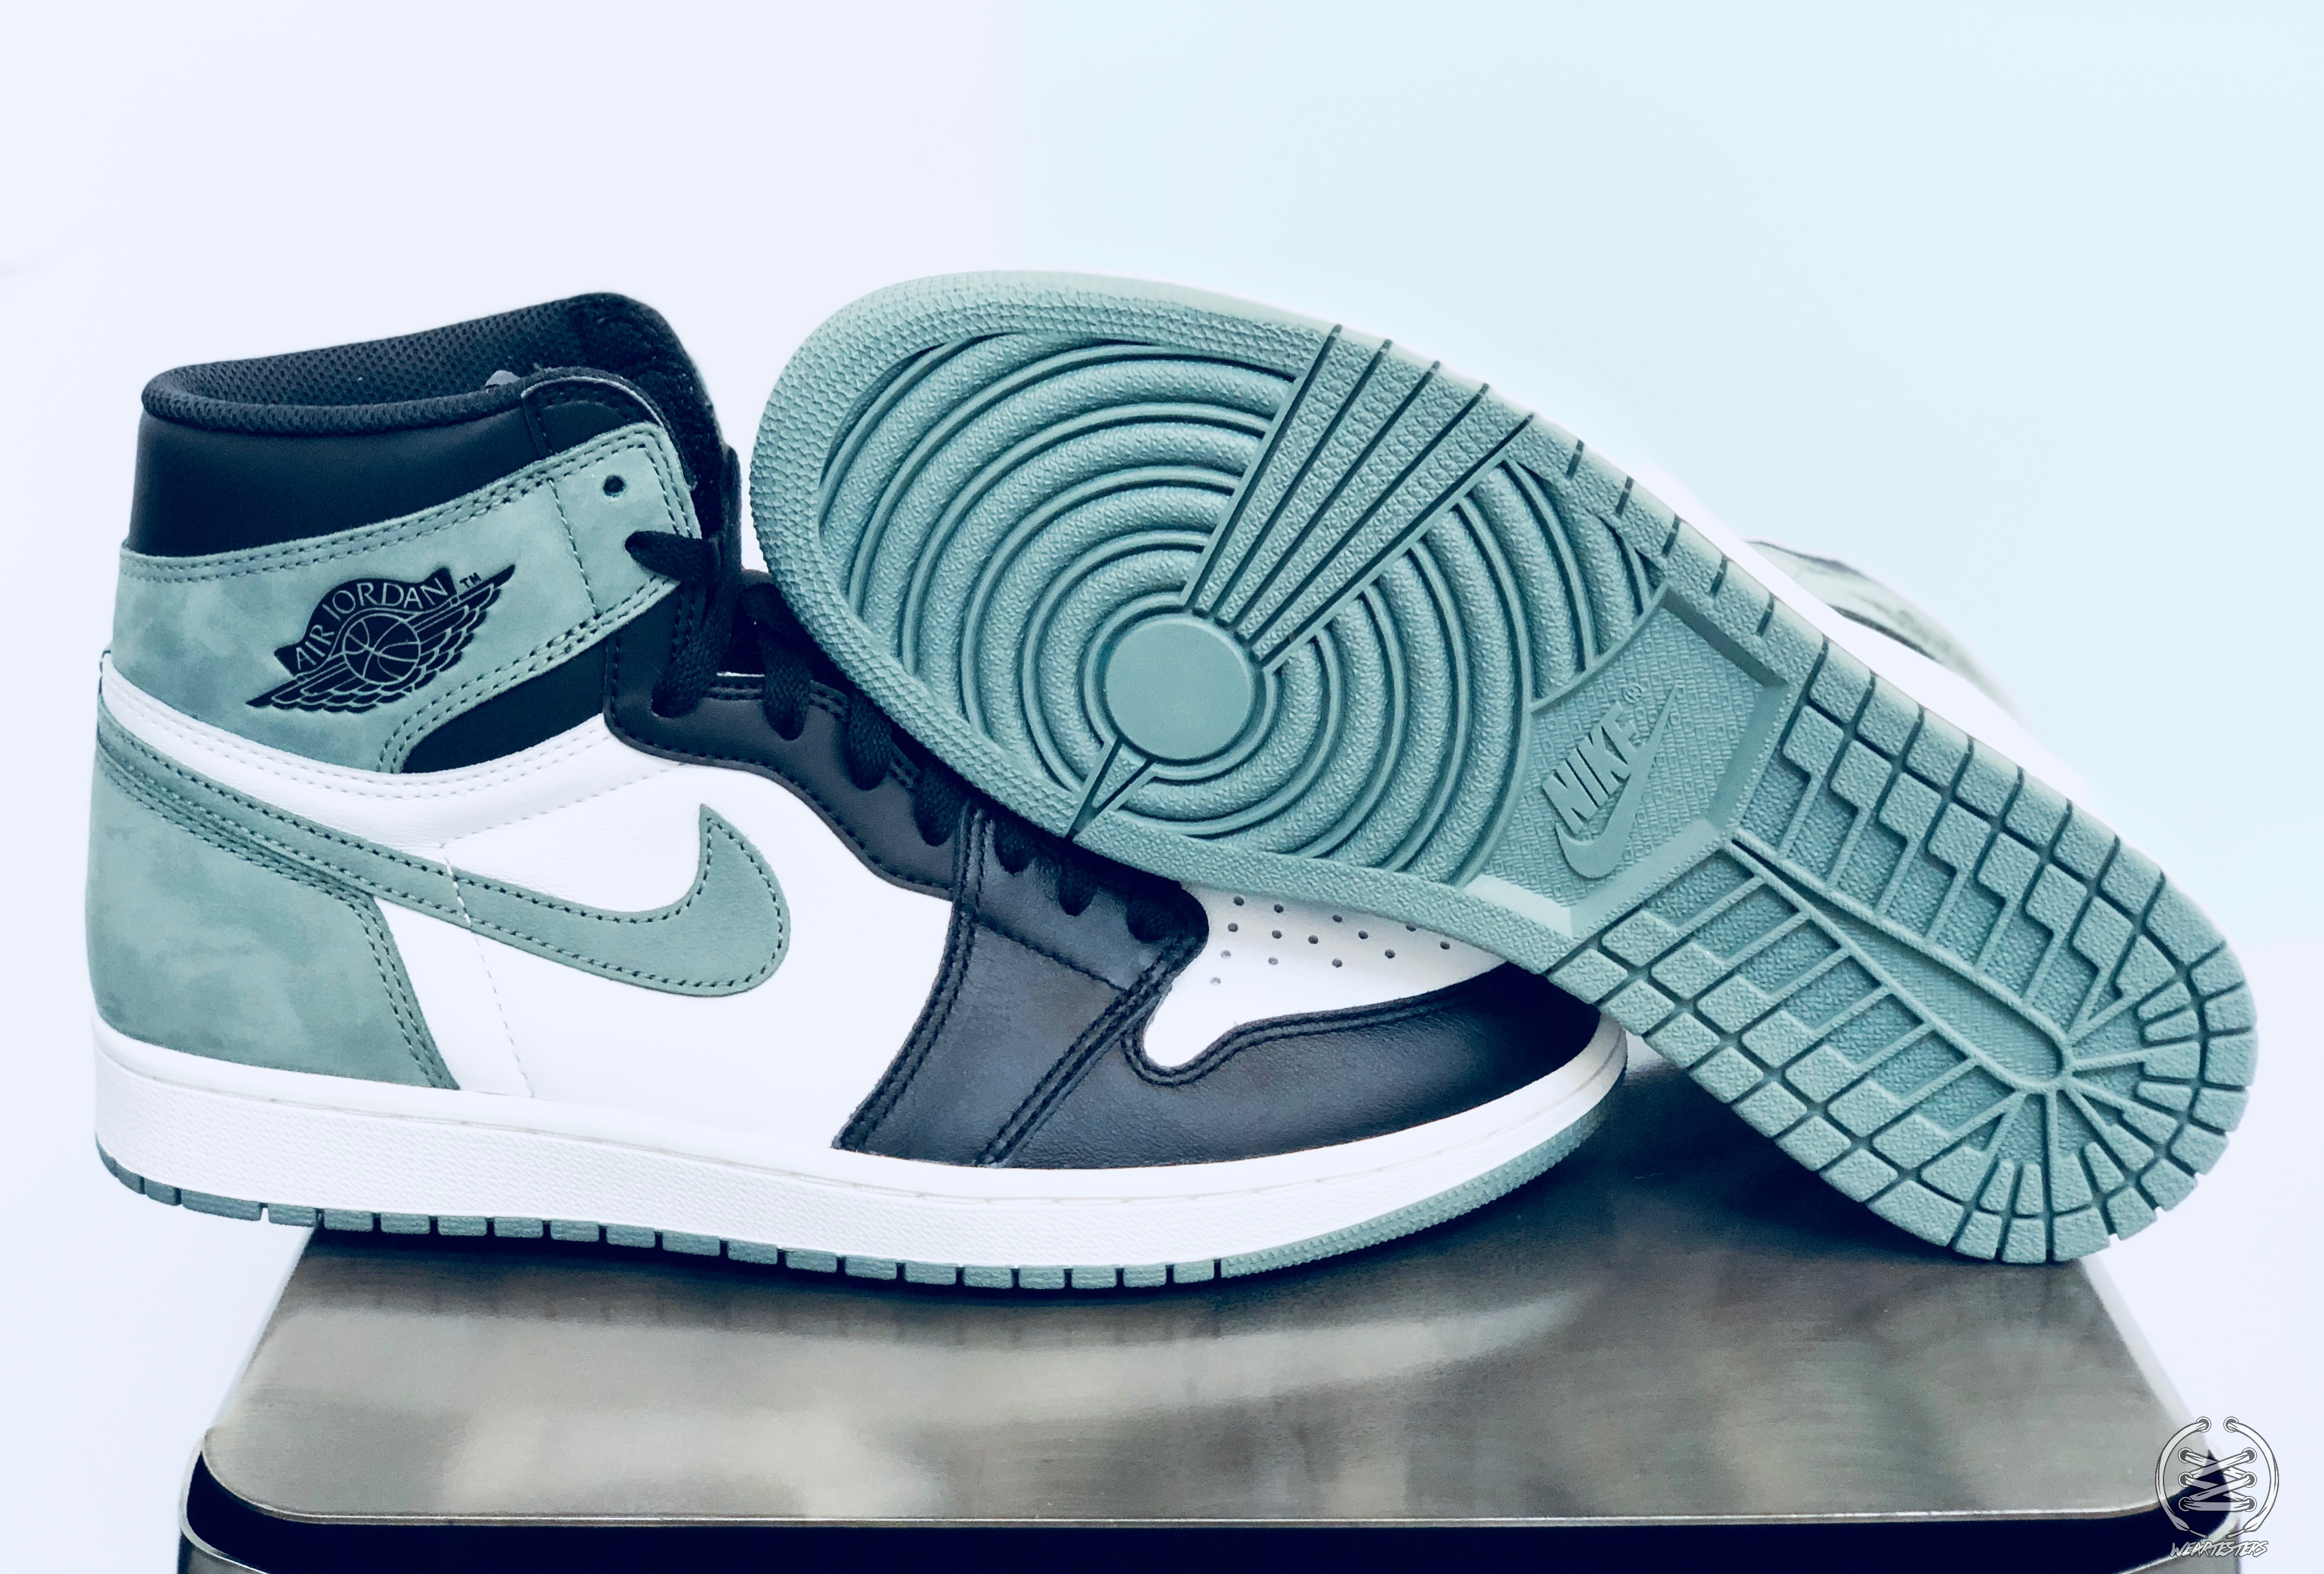 Only the Air Jordan 1 'Clay Green' and